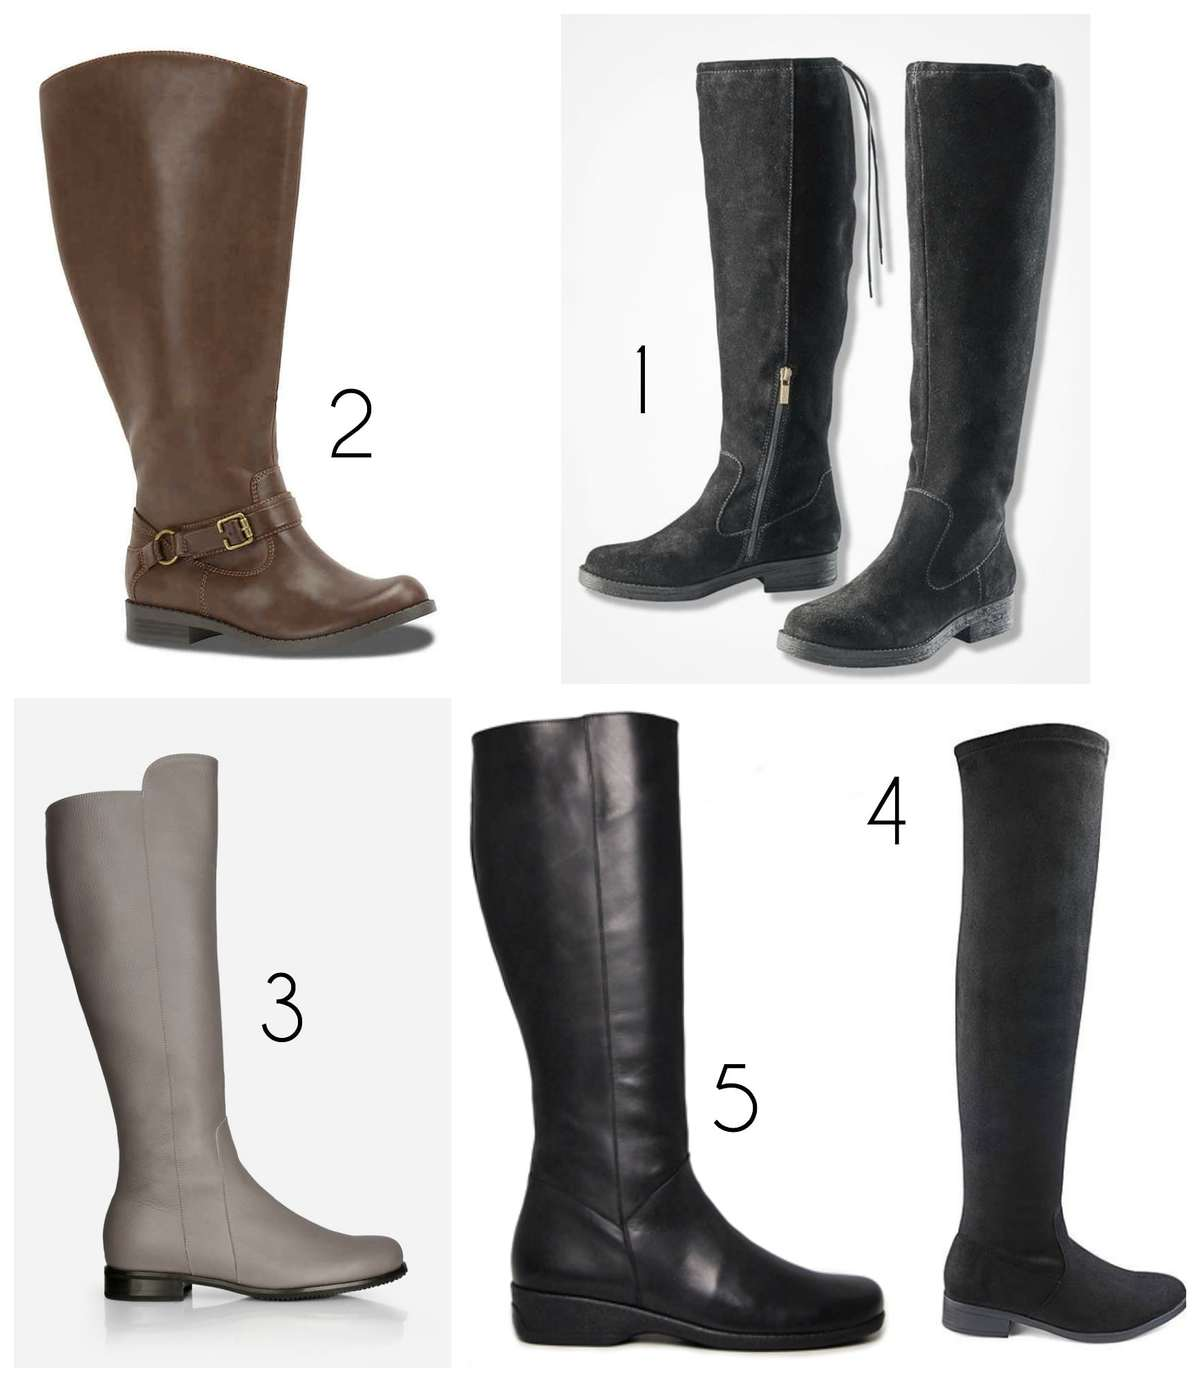 the most stylish wide calf boots with wider calf shaft circumference